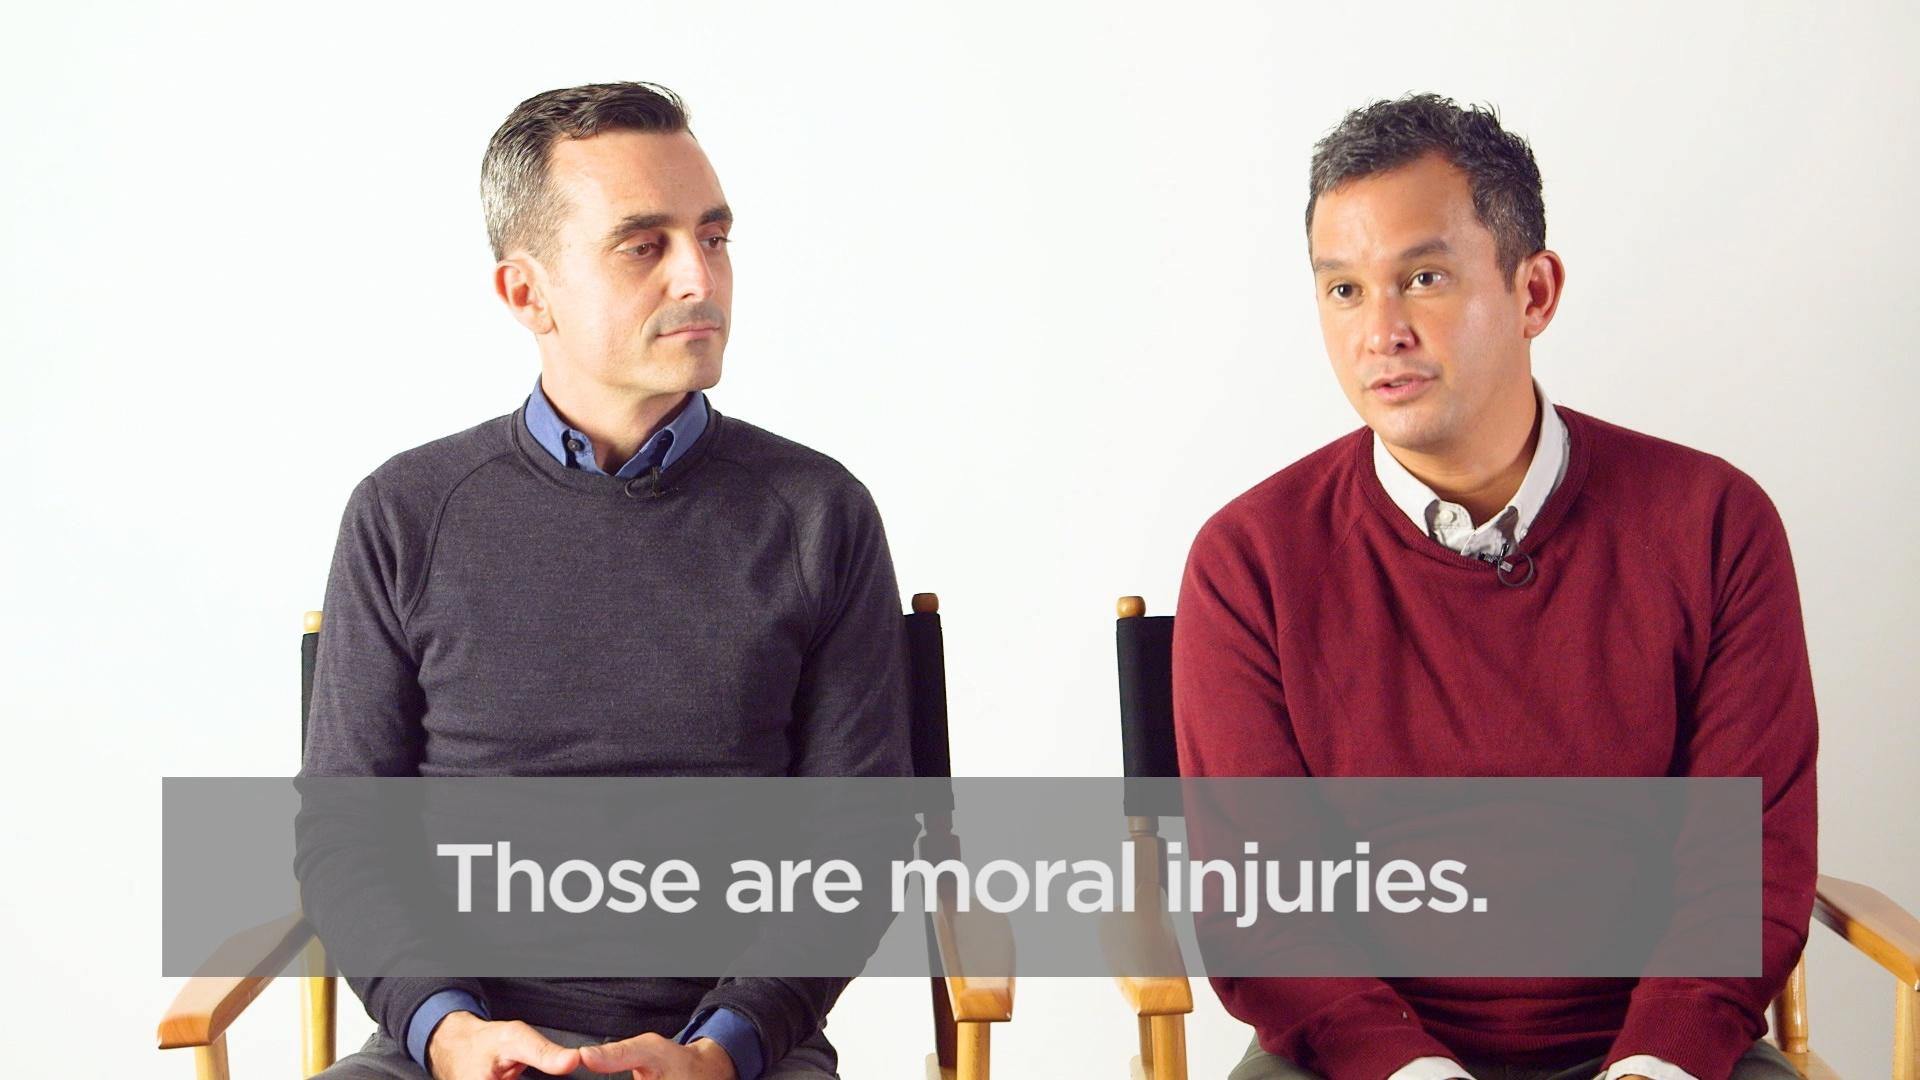 What is moral injury?